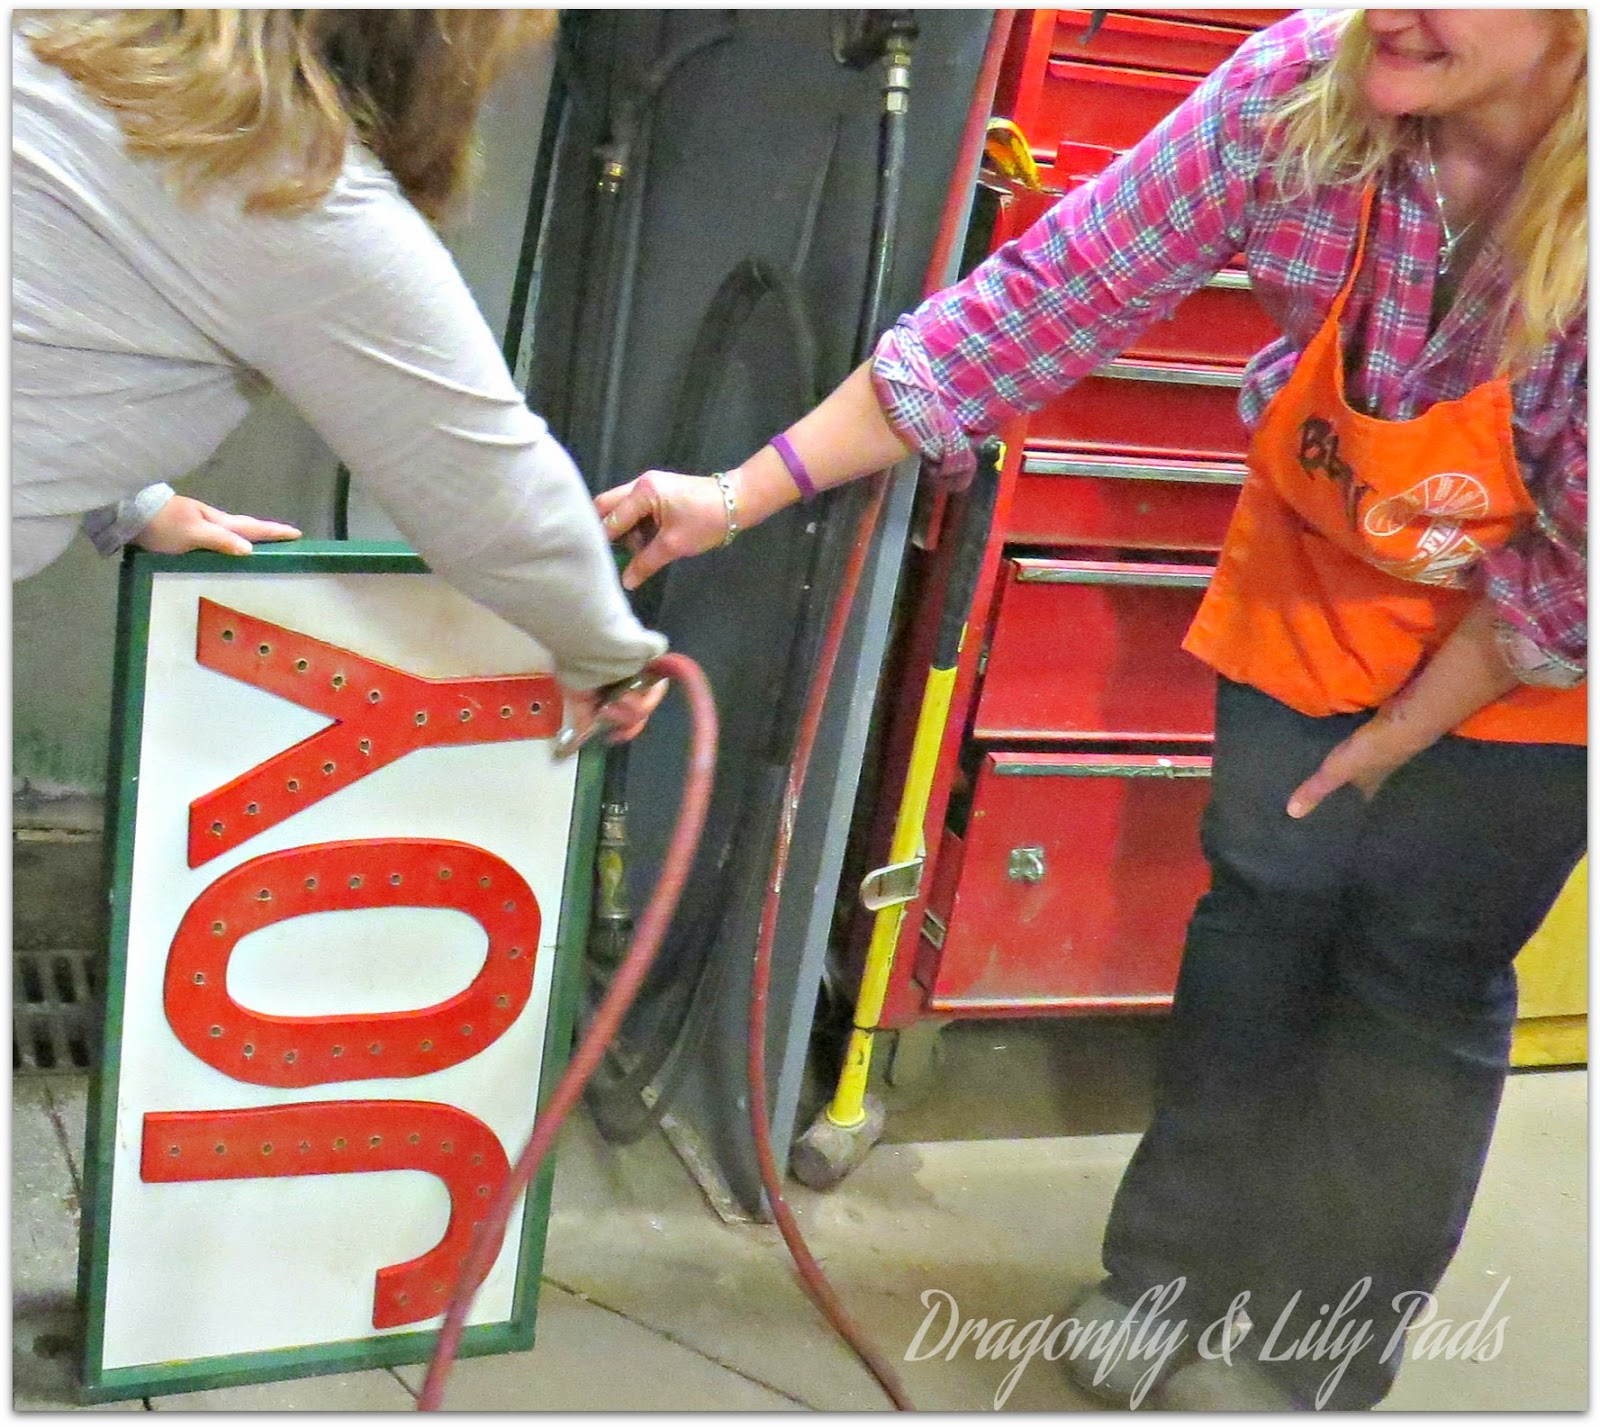 Cleaning up the Sawdust, Home Depot Her It Yourself Workshop, Joy Marquee Sign